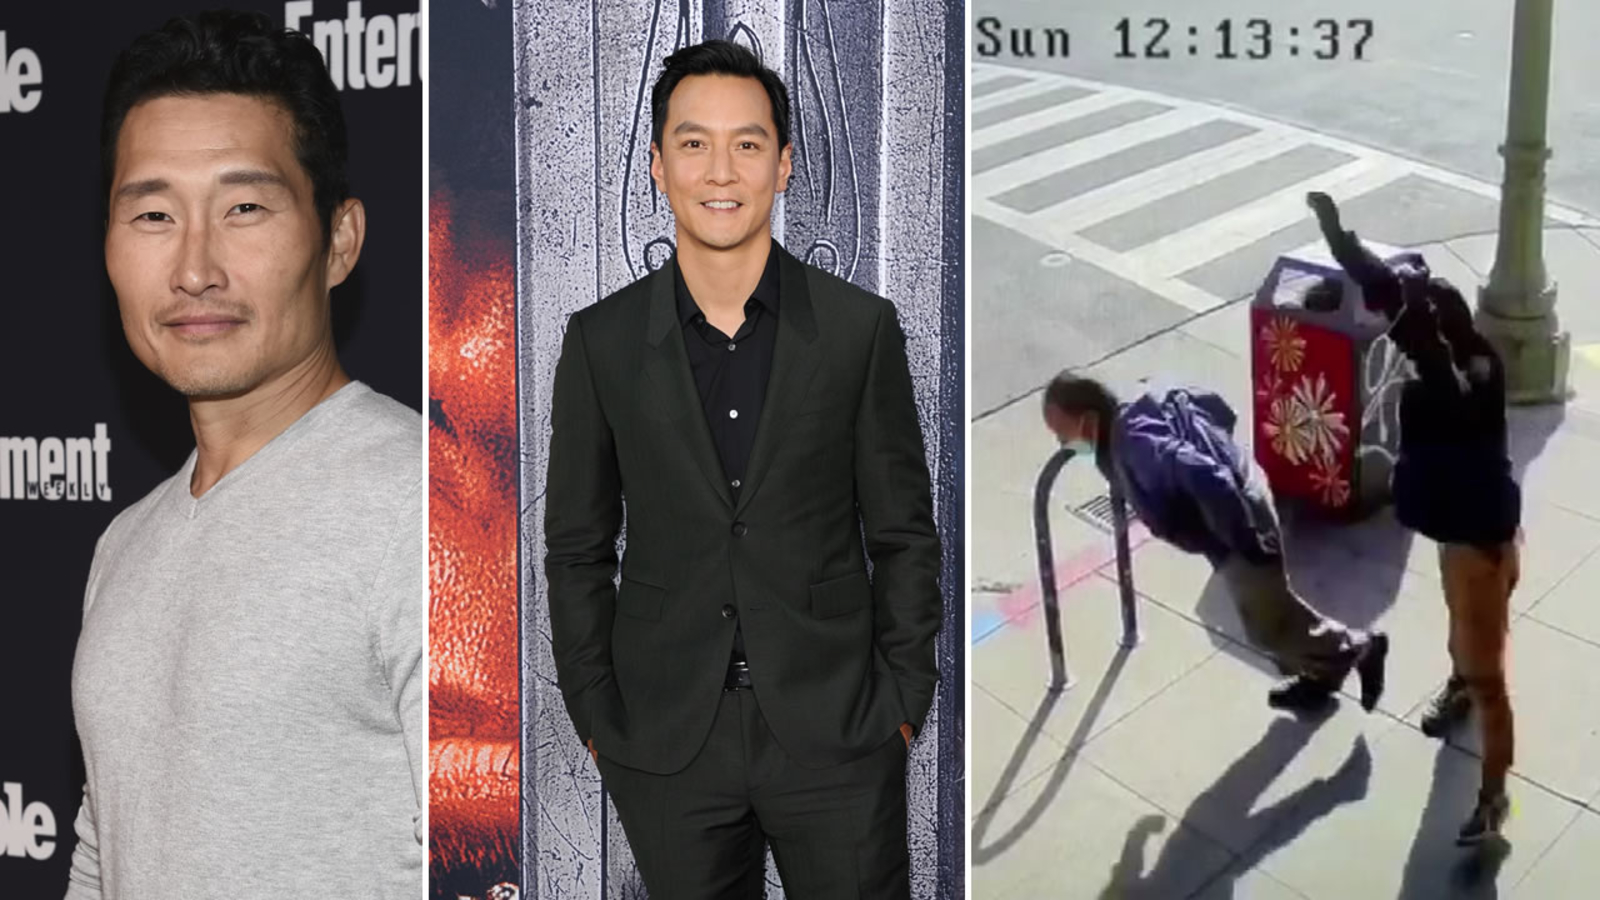 abc7news.com: Actors Daniel Dae Kim, Daniel Wu offer K reward after 91-year-old shoved to ground in Oakland's Chinatown